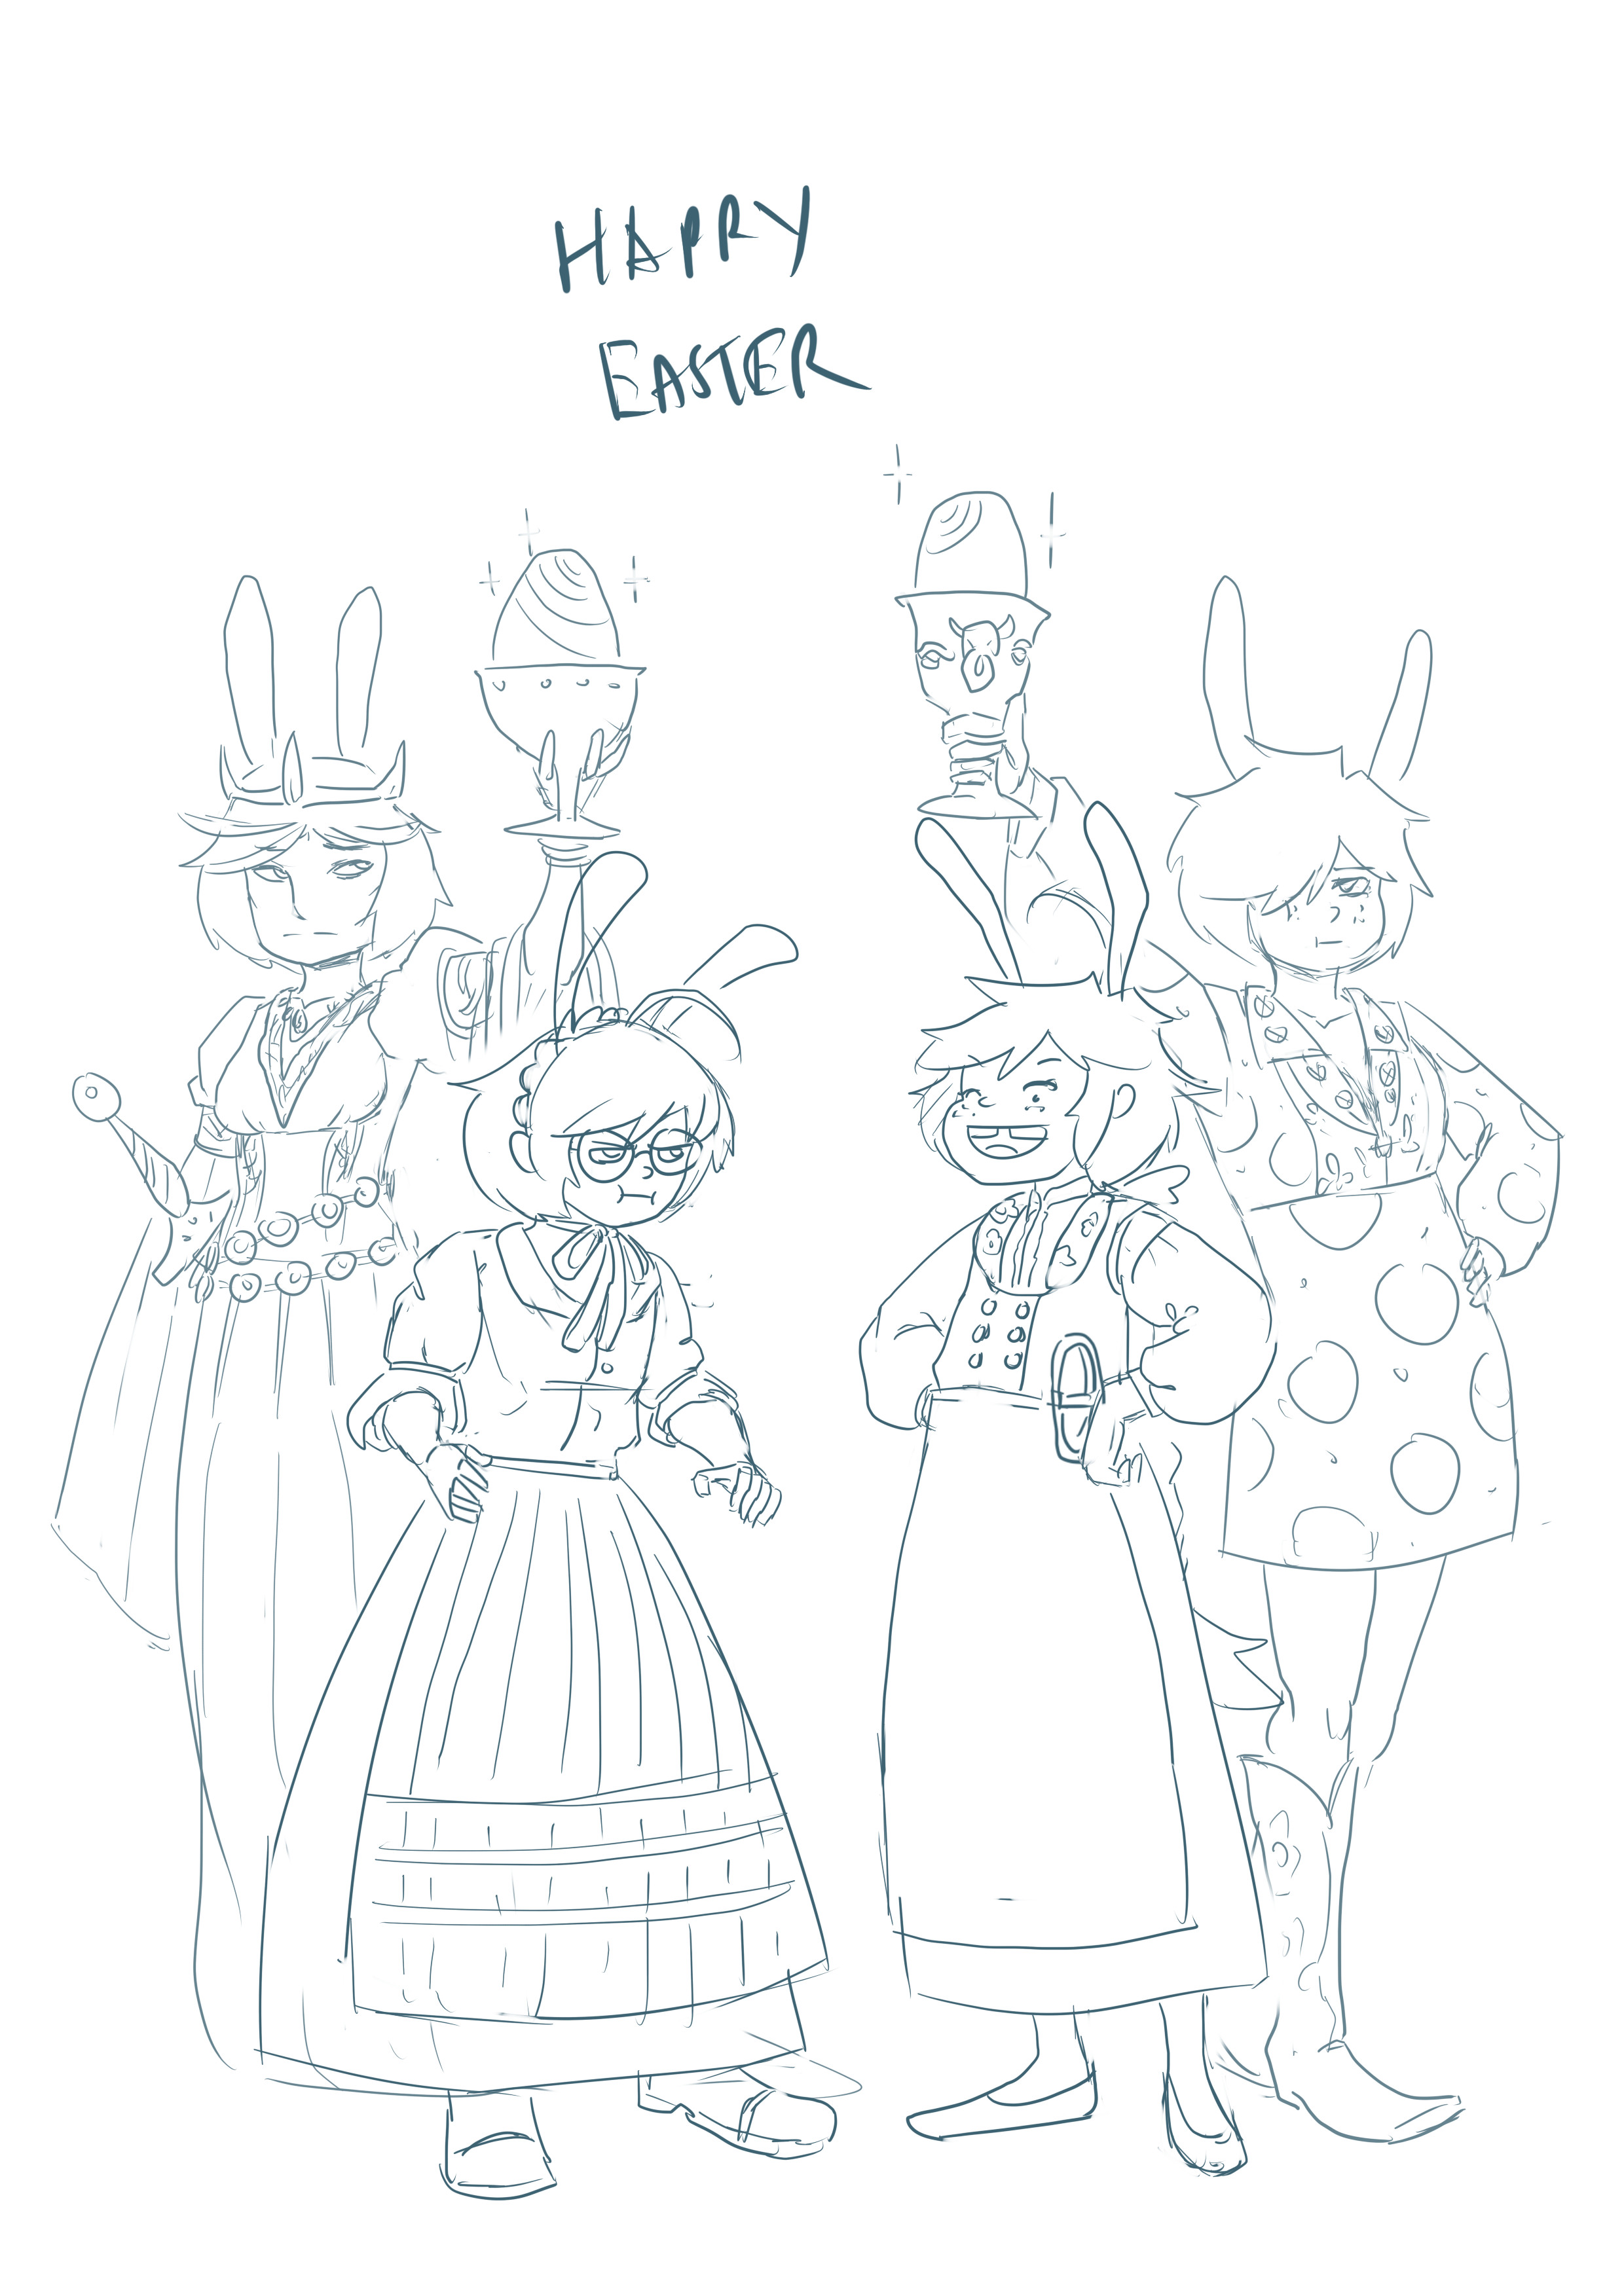 Old Easter pic. Easter is the best time to compare Welsh and Finn dresses.